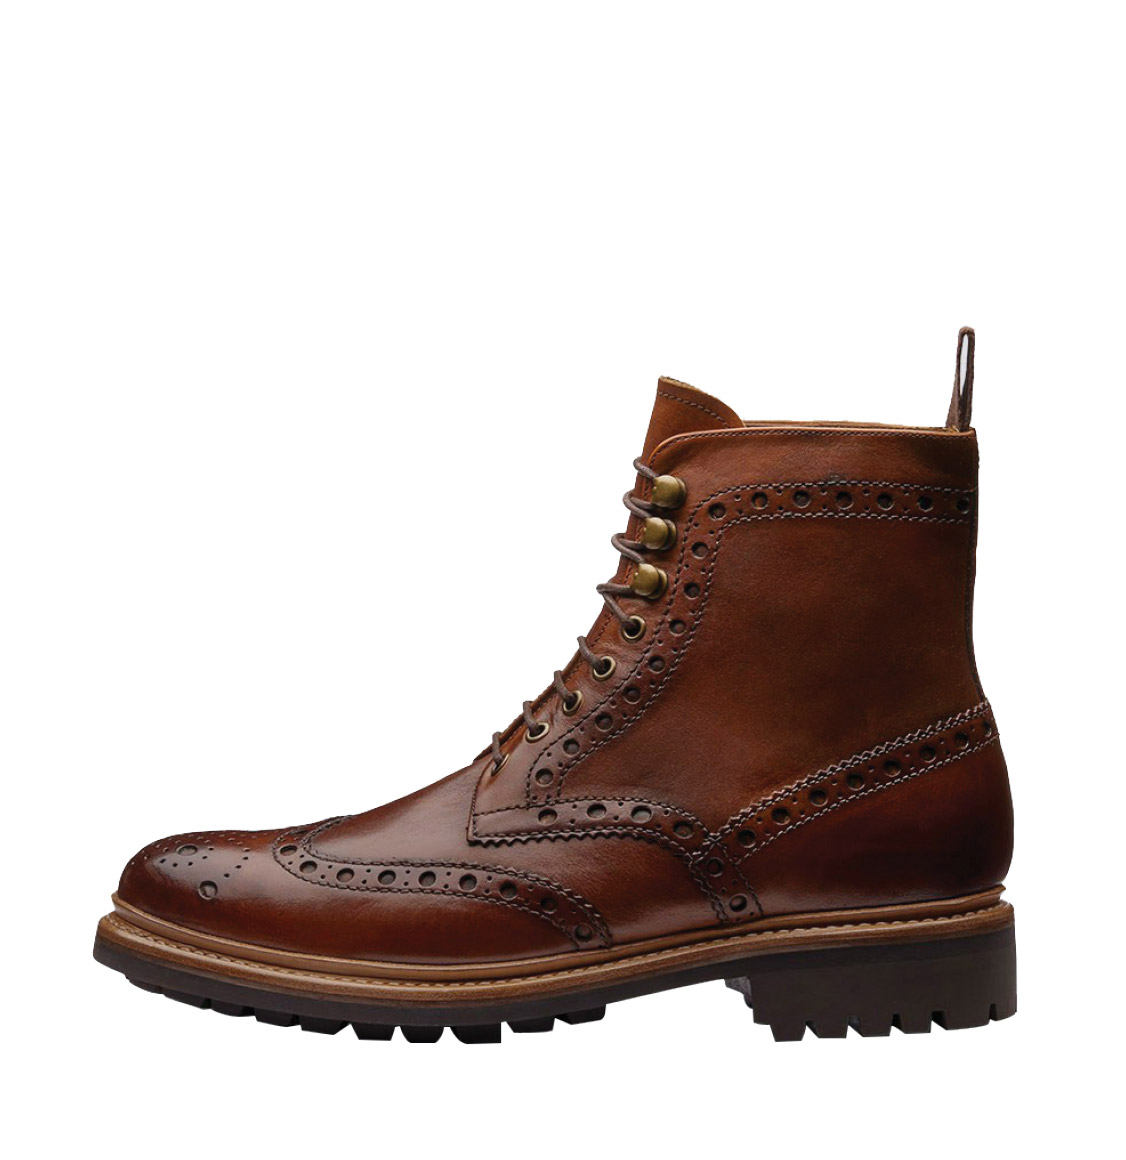 Grenson Fred Goodyear Tan Leather Brogue Boot